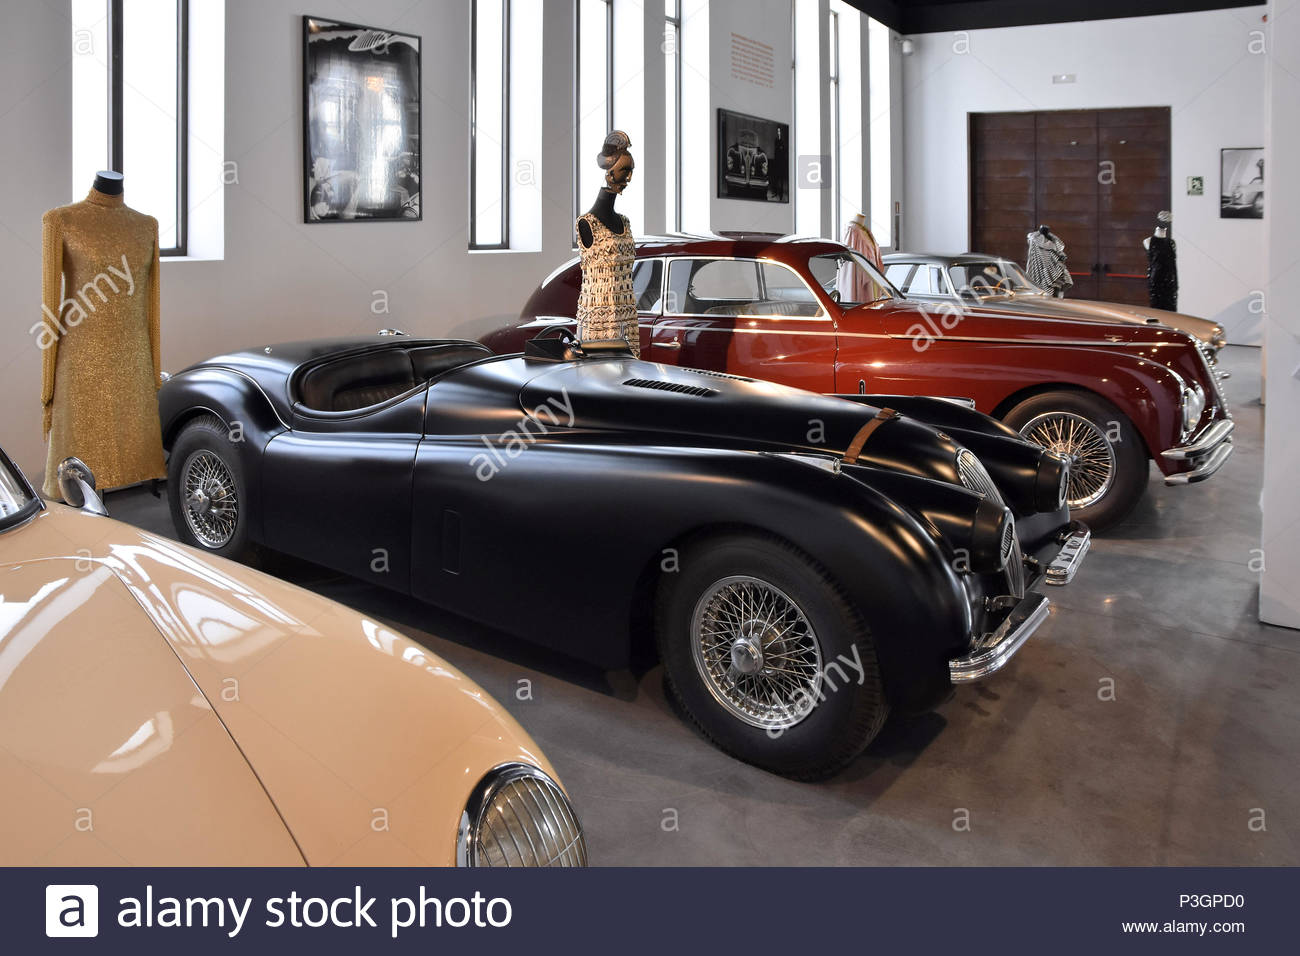 Jaguar classic vintage cars displayed at Museum Of Automobiles (Museo Automovilístico) in Malaga Spain Europe. - Stock Image